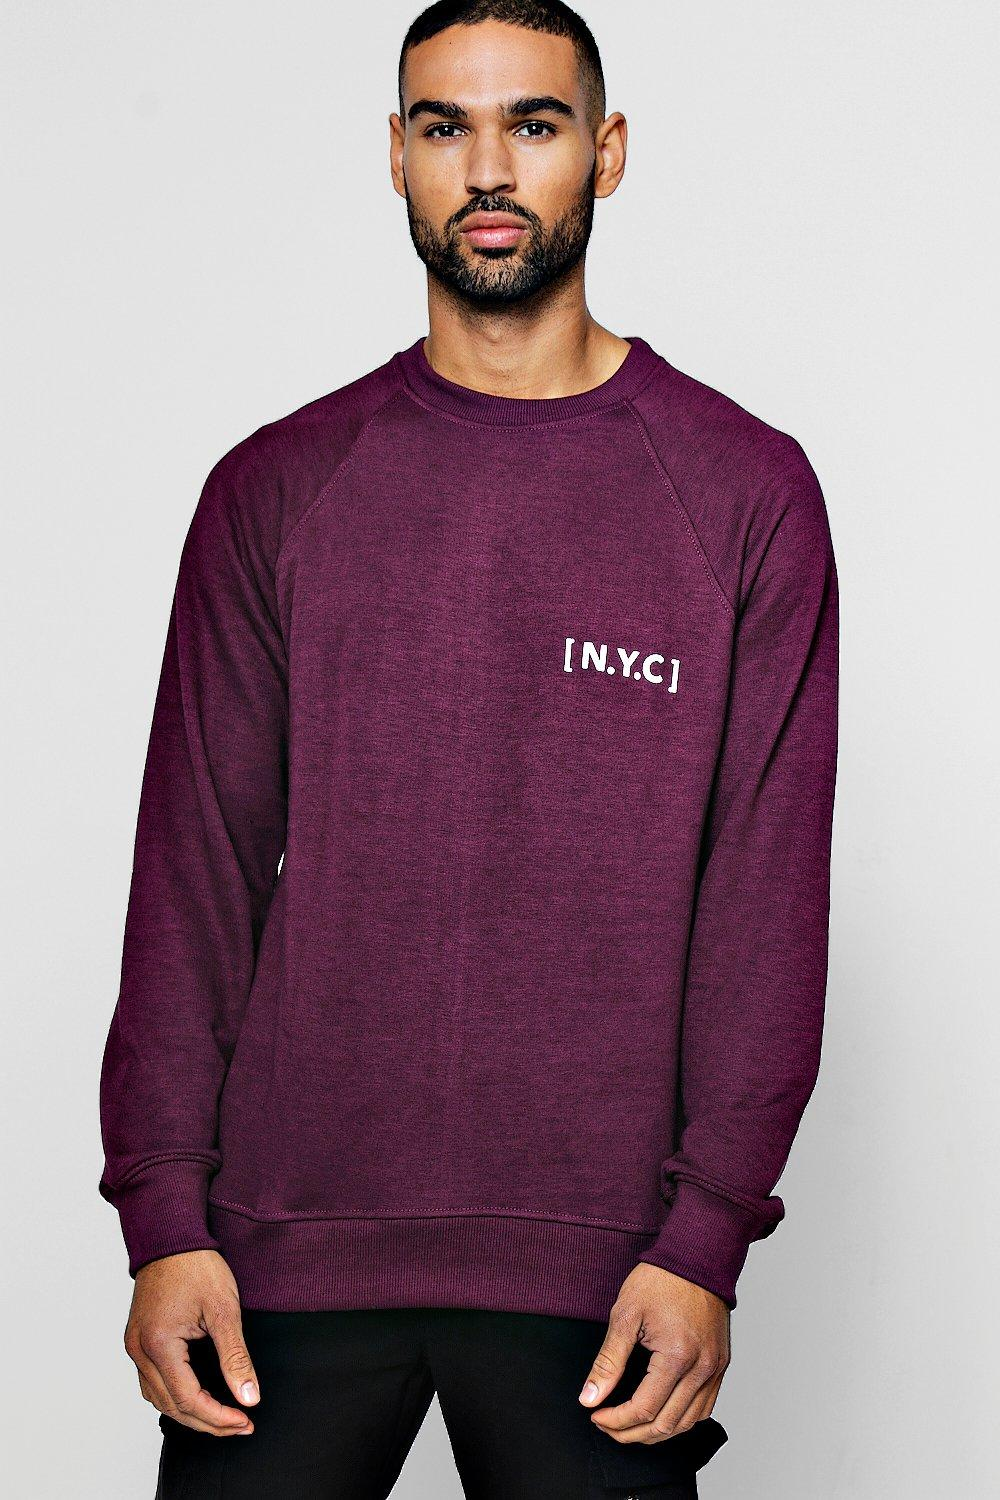 Crew Neck Sweatshirt with NYC Slogan